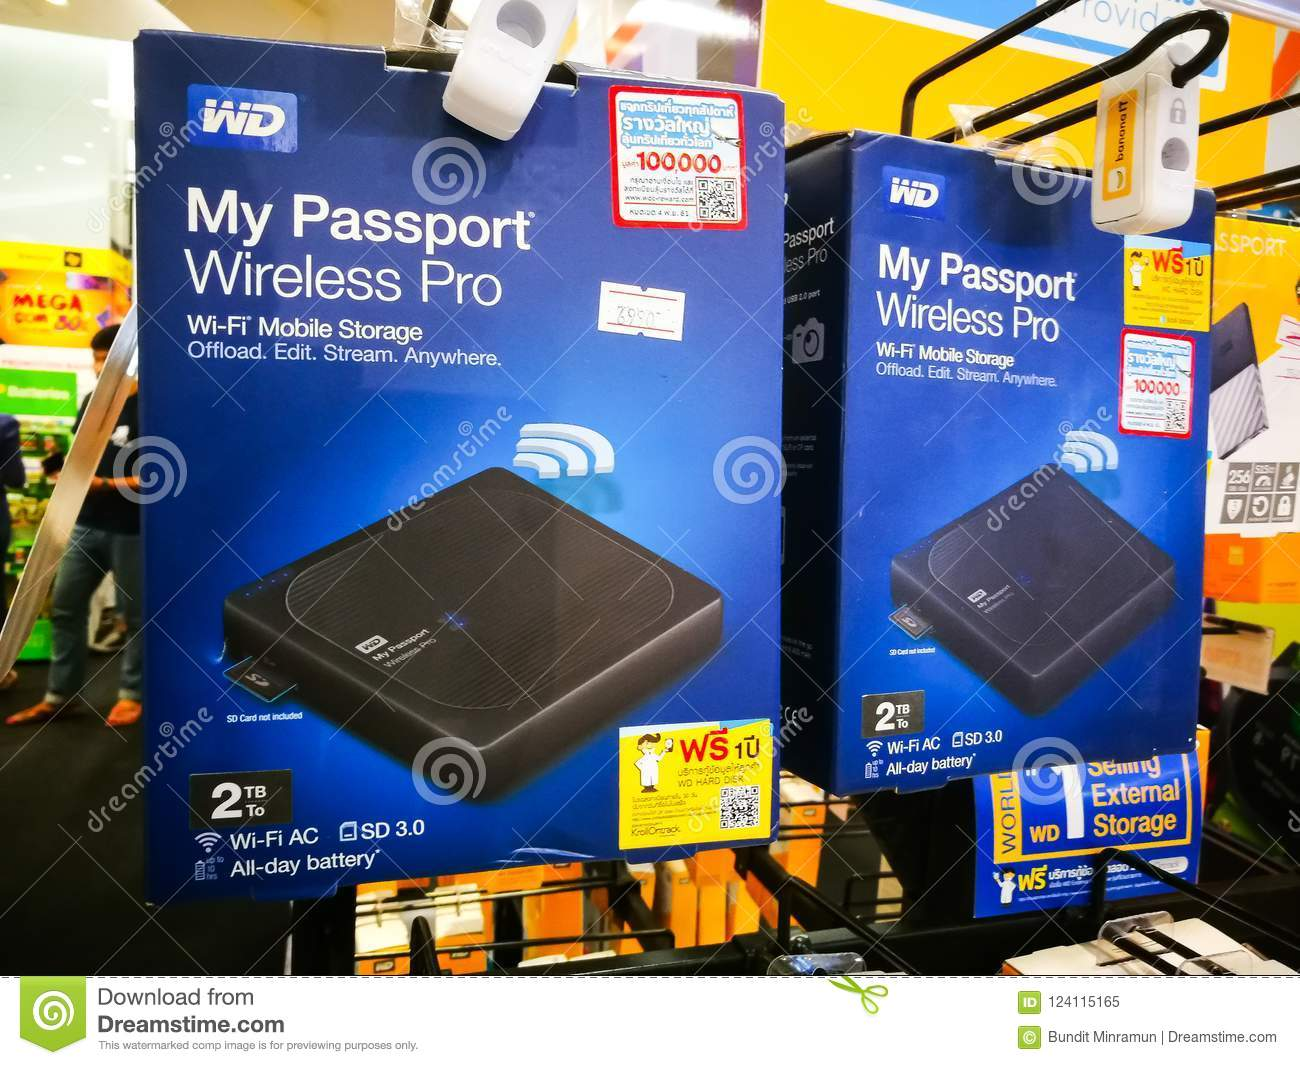 WD Western Digital My Passport Wireless Pro Portable